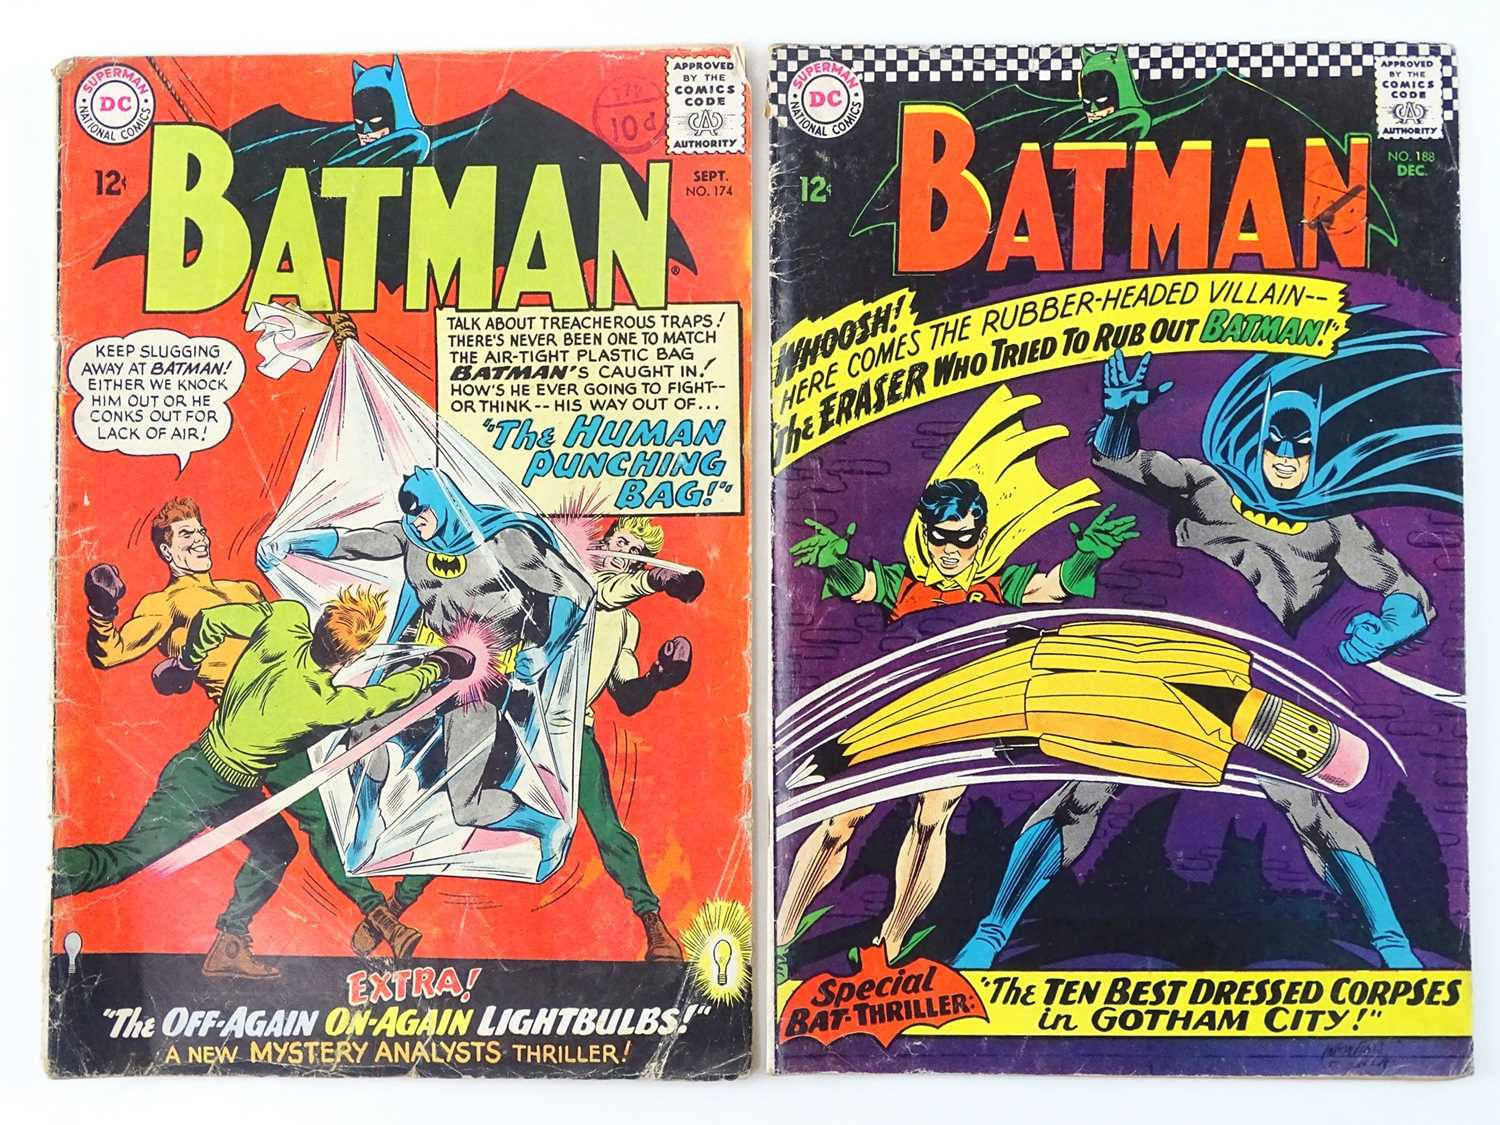 BATMAN #174 & 188 - (2 in Lot) - (1965/66 - DC - UK Cover Price) - Includes First appearance